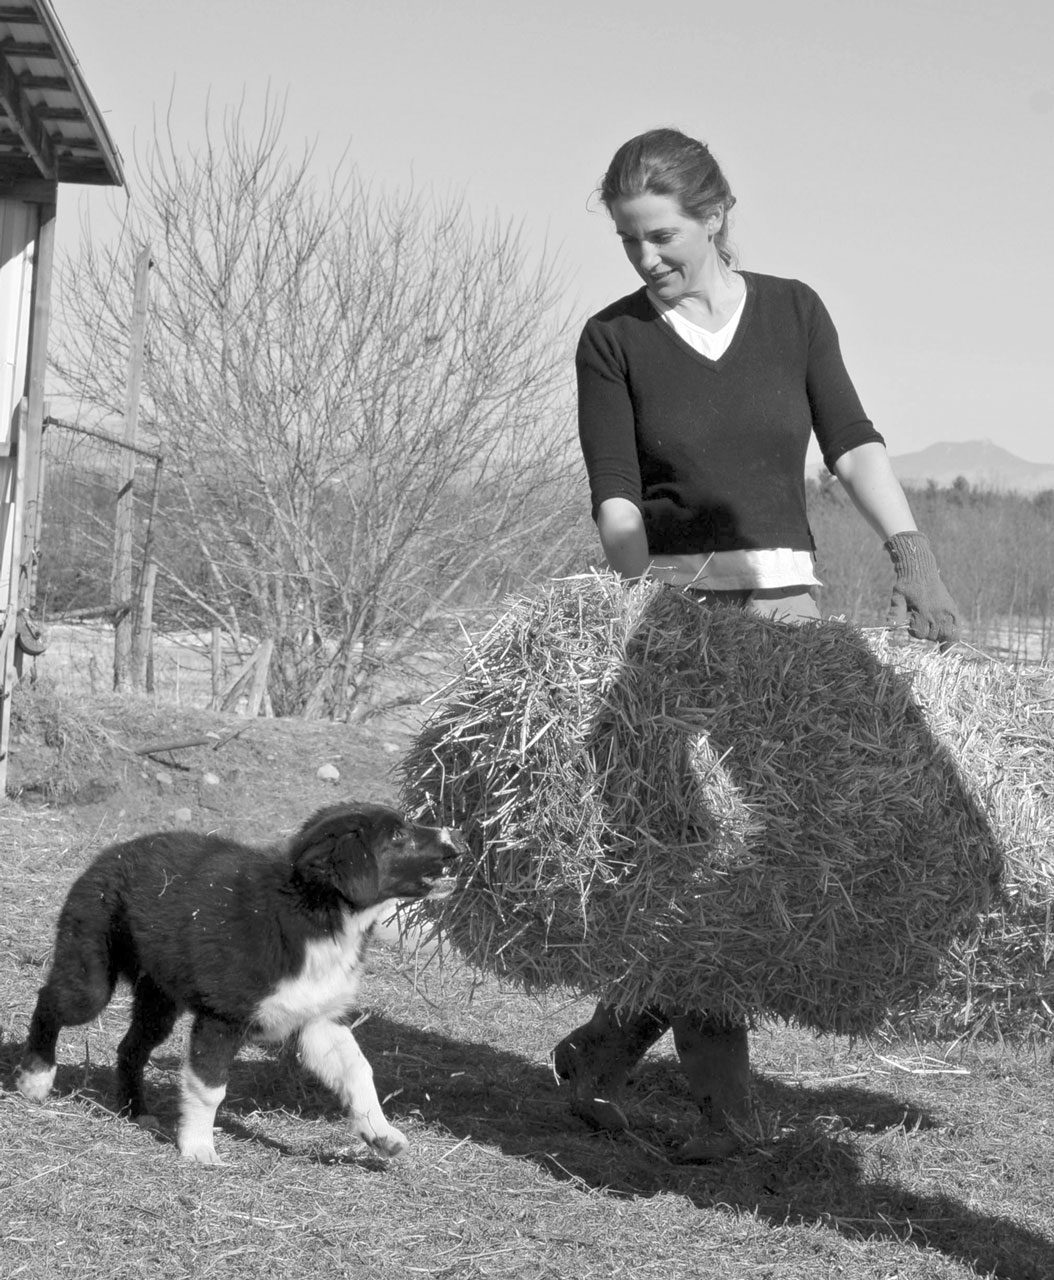 The English Shepherd and the Diversified Small Farm